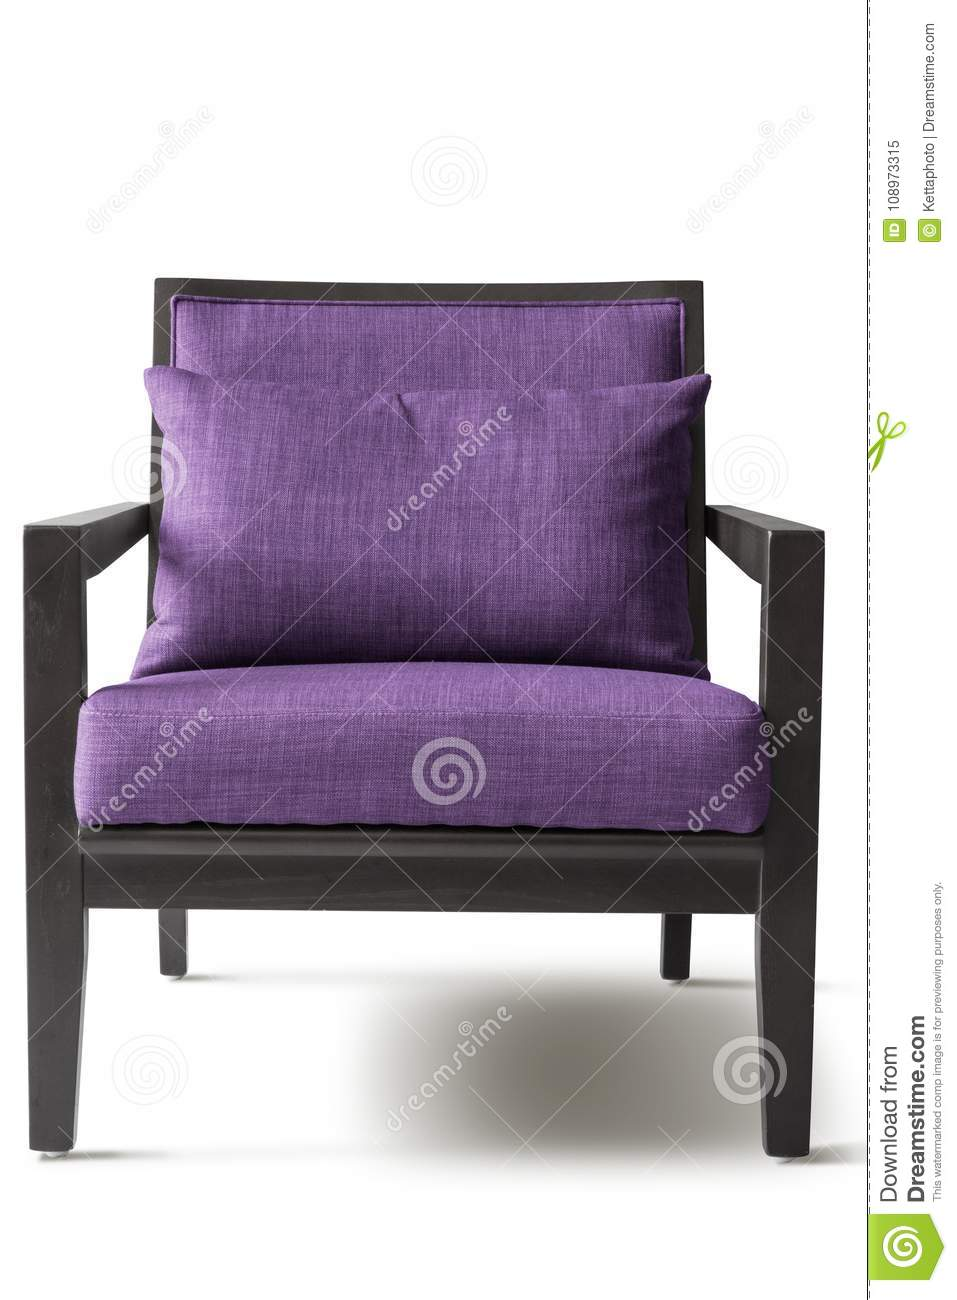 Purple armchair stock image. Image of elegance, background ...